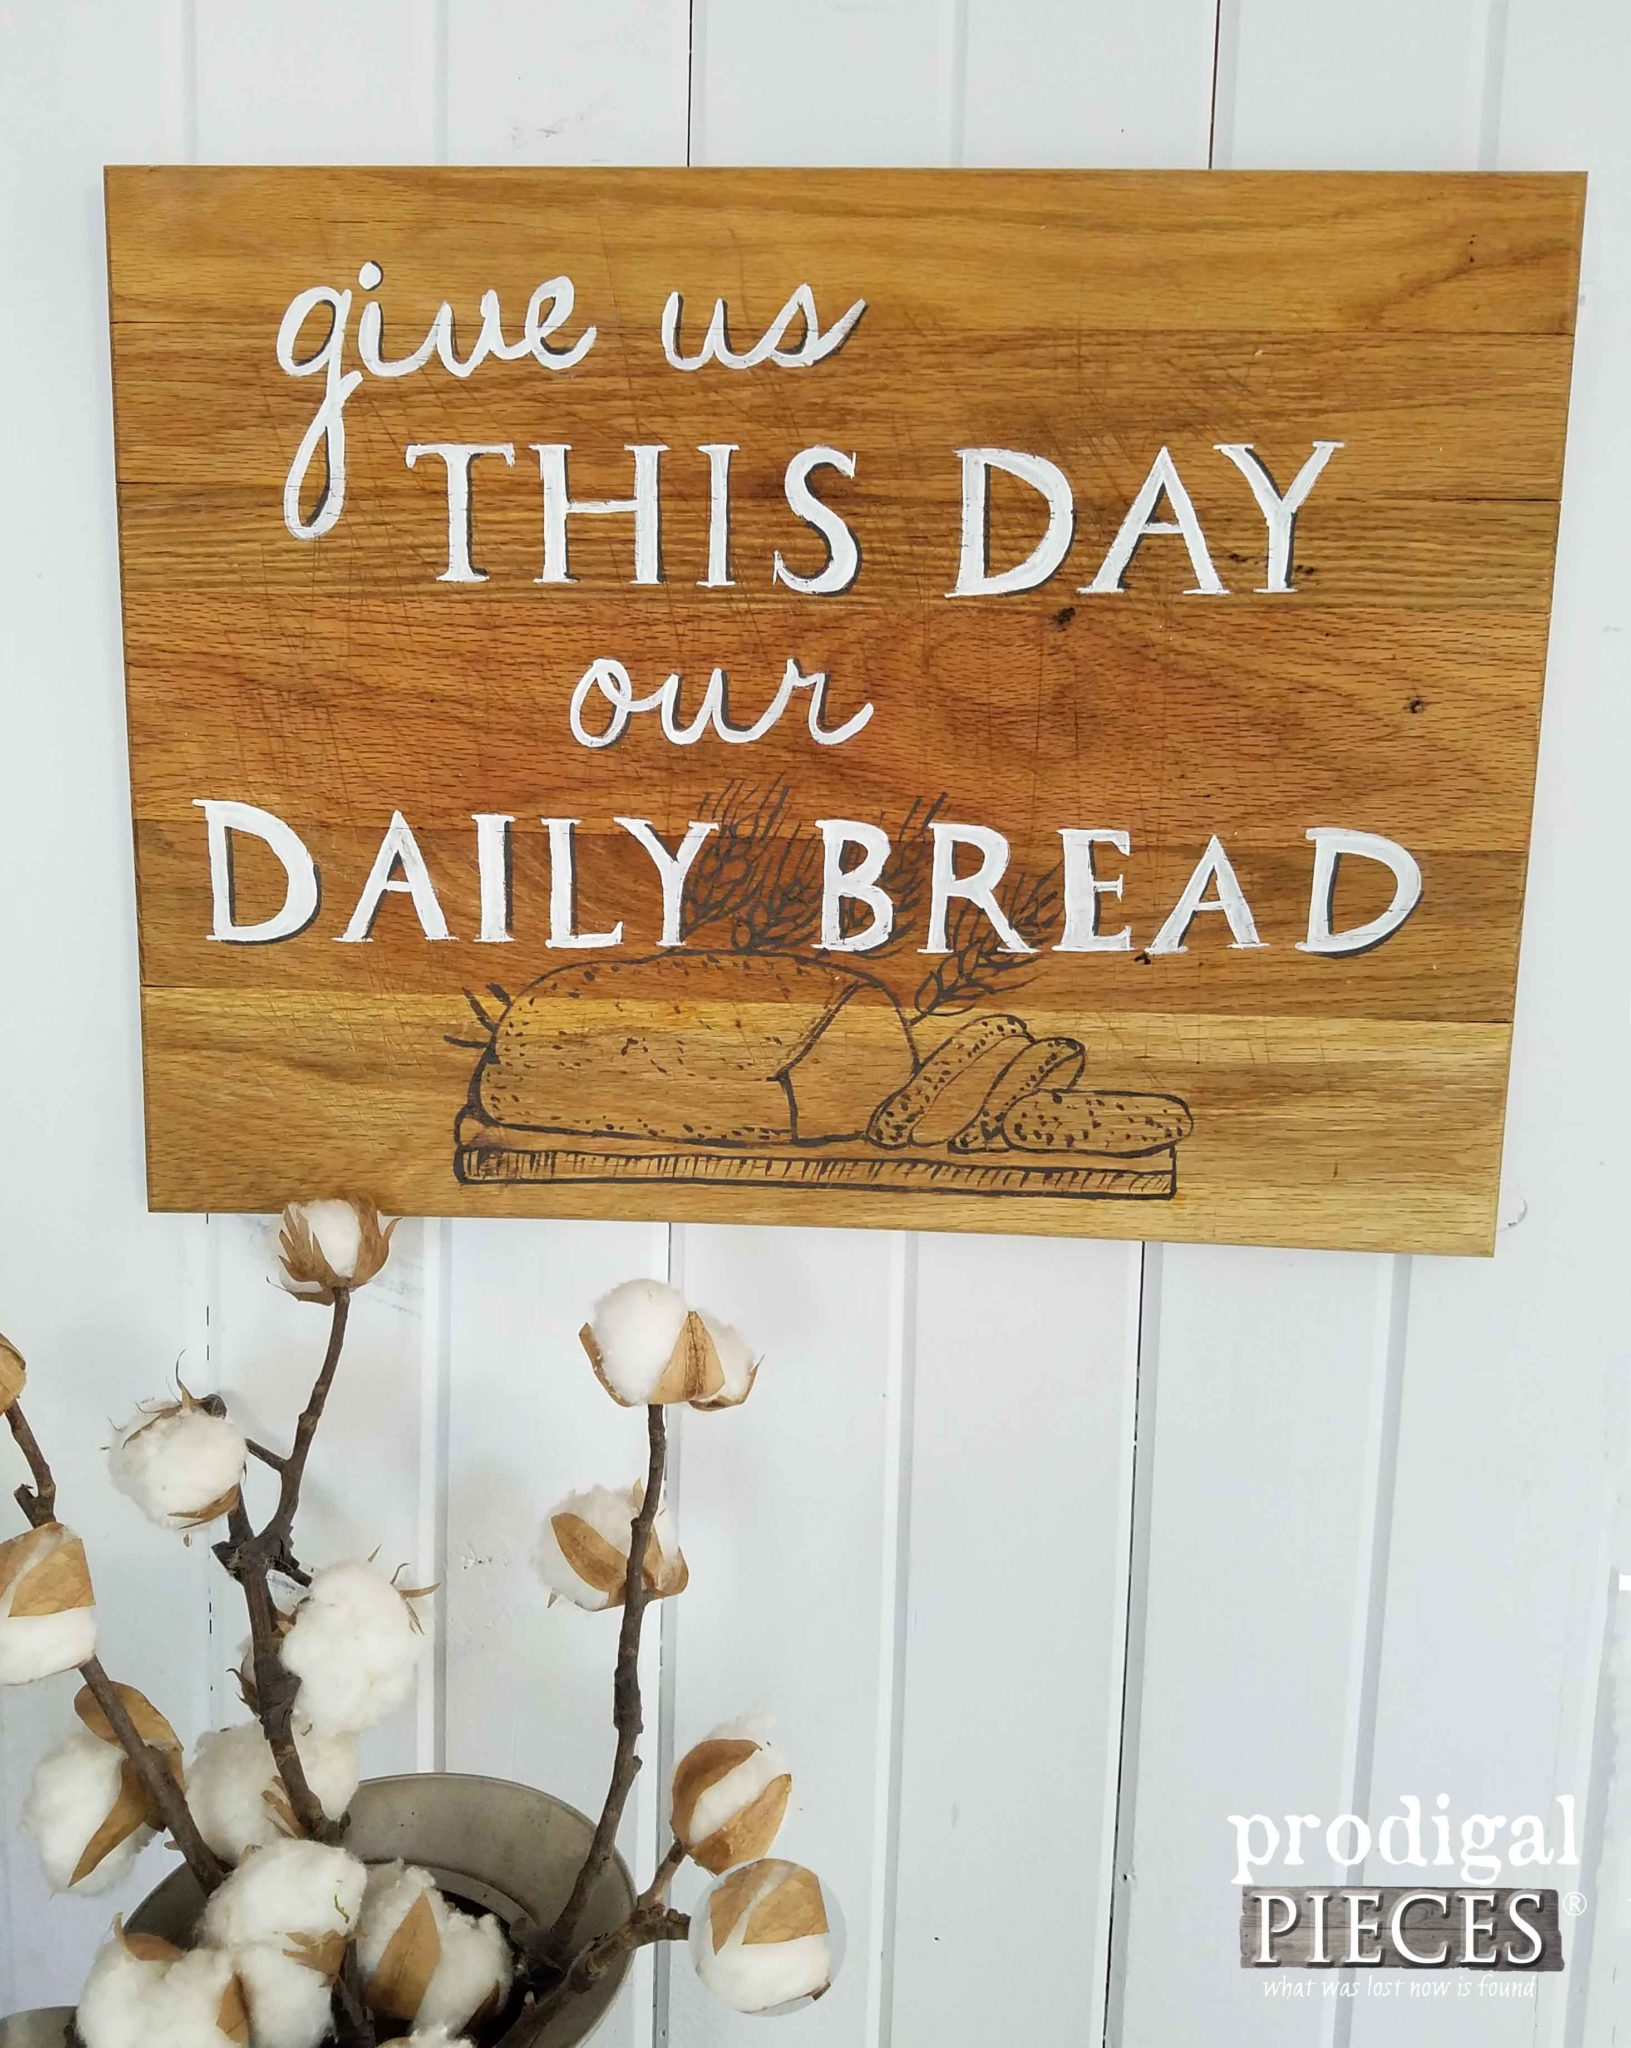 Cutting Board Wall Art ~ Give Us This Day our Daily Bread | prodigalpieces.com